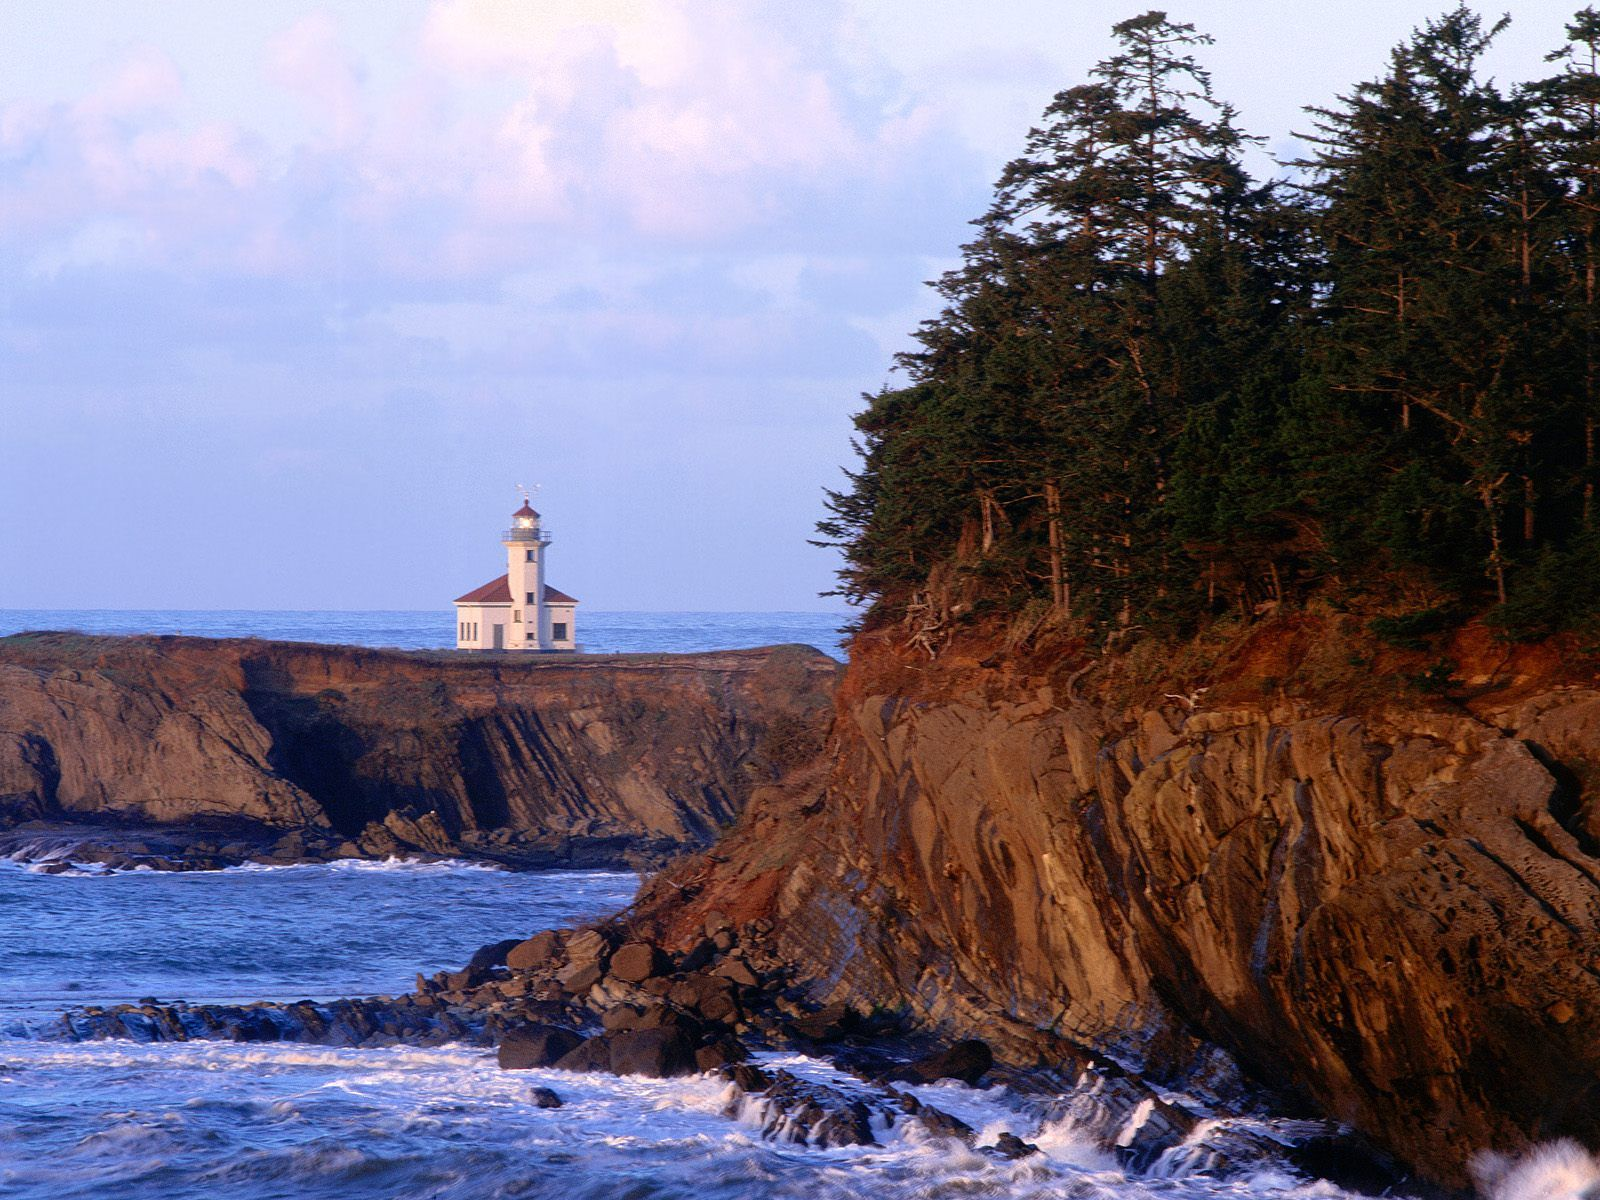 009_cape_arago_lighthouse_coos_county_oregon